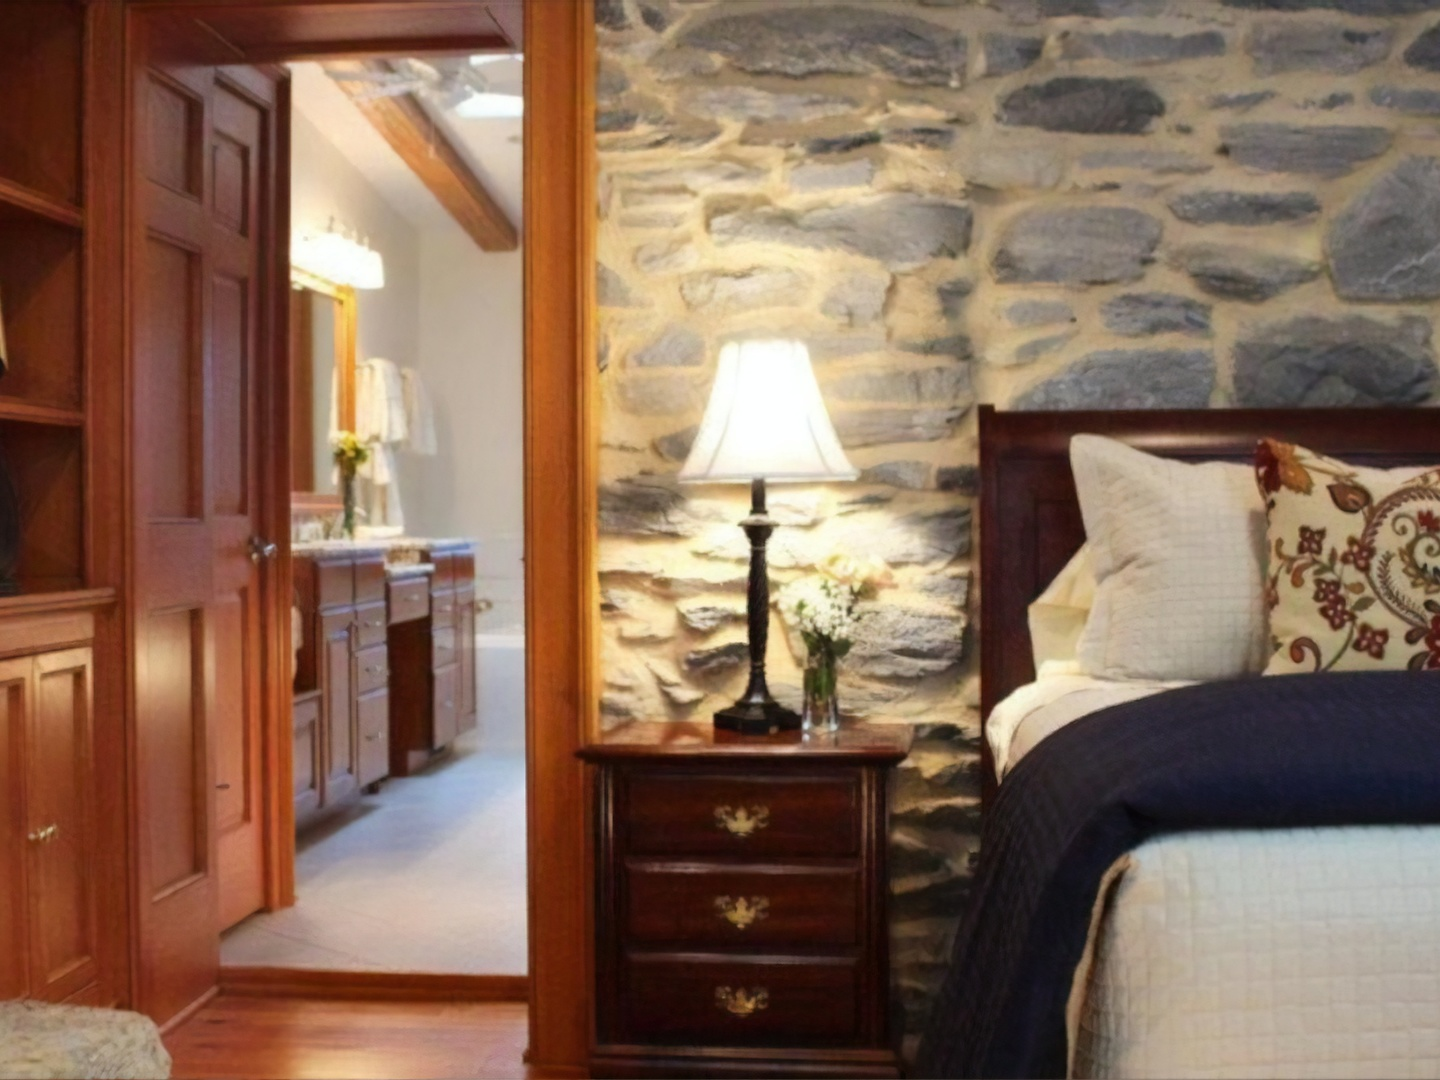 A bedroom with a view of a living room at Hillbrook Inn.